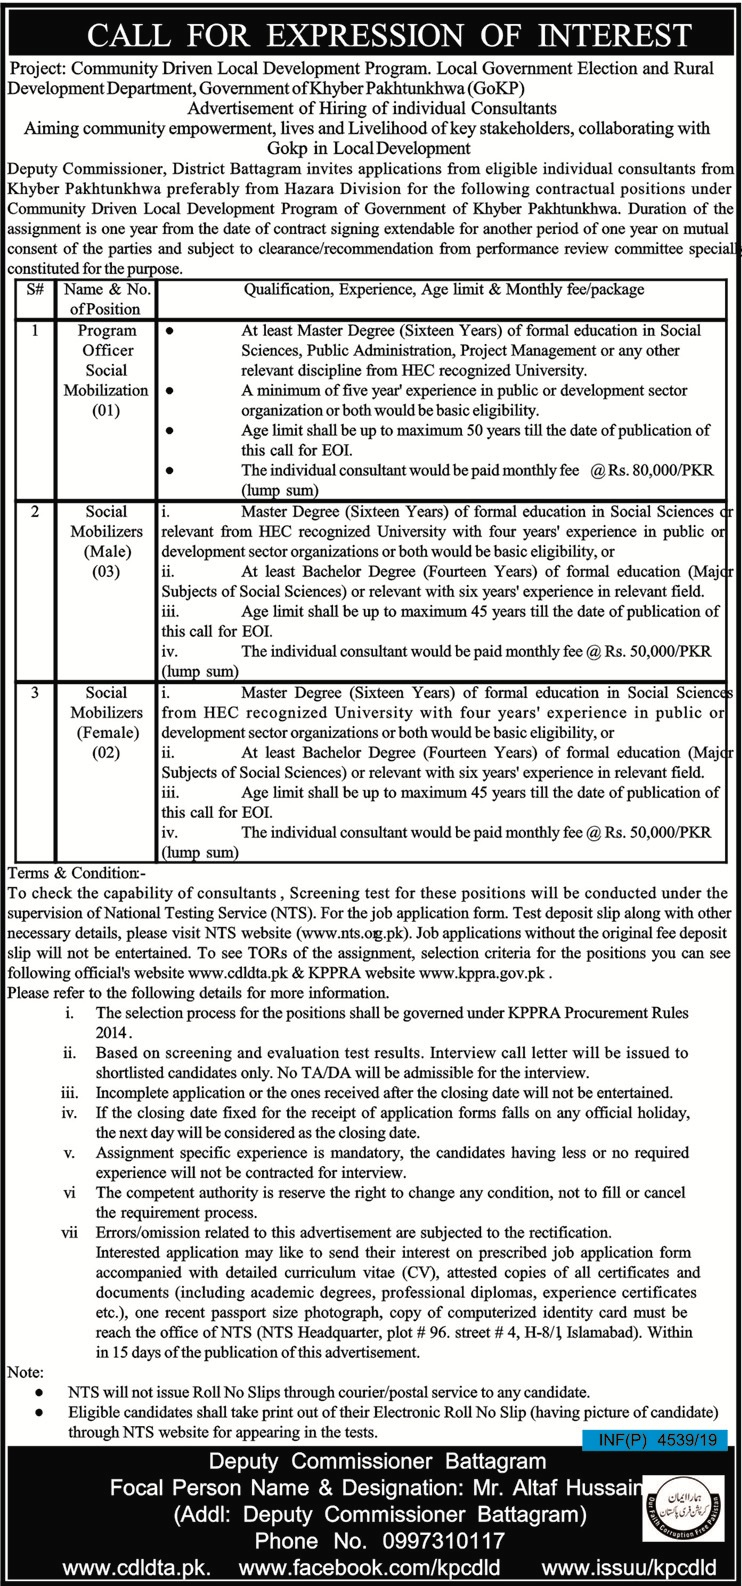 Deputy Commissioner Office Battagram CDLD Jobs NTS Test Roll No Slip